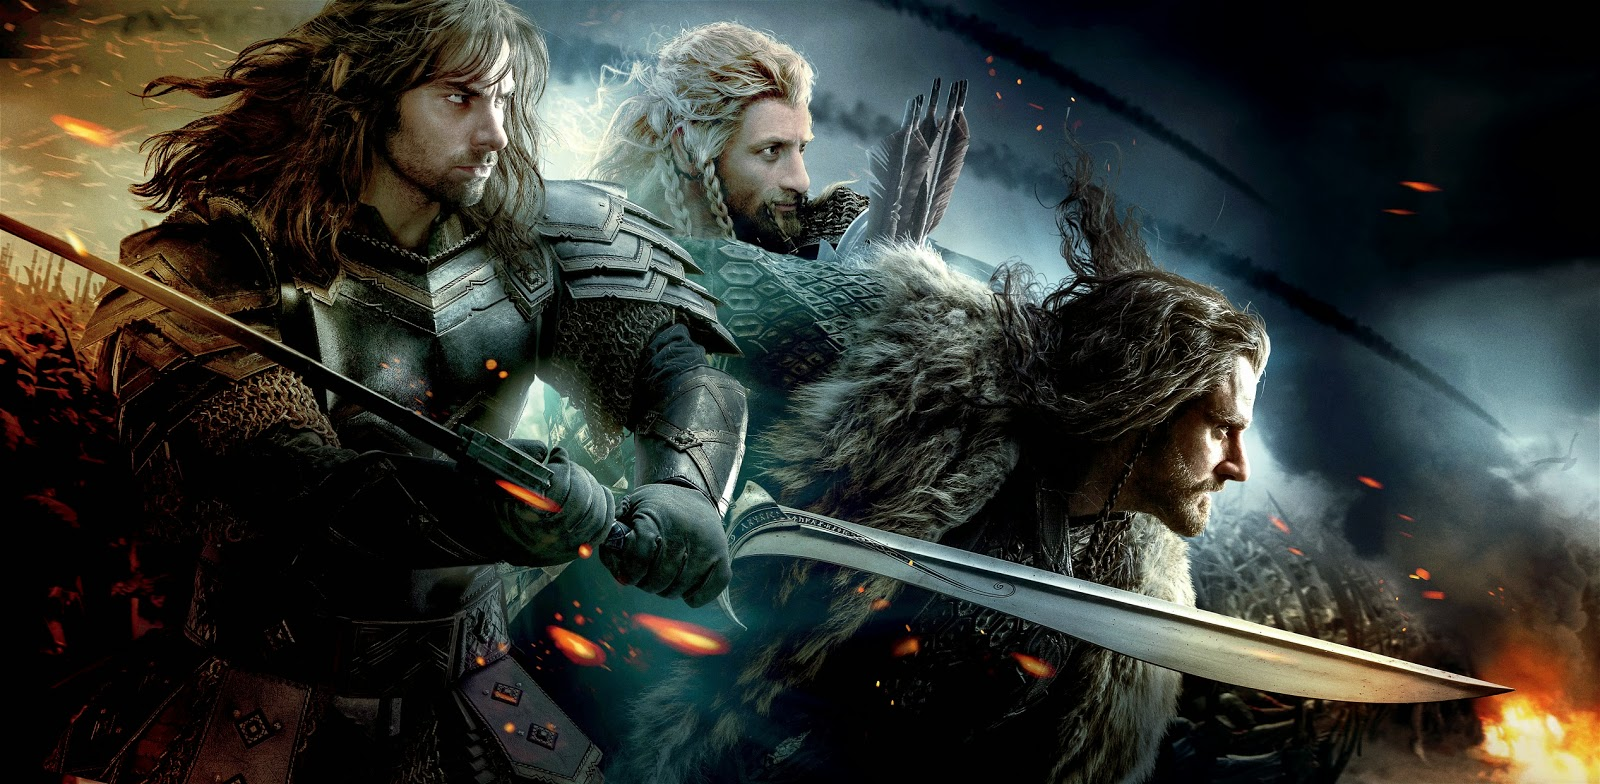 sons of durin pic